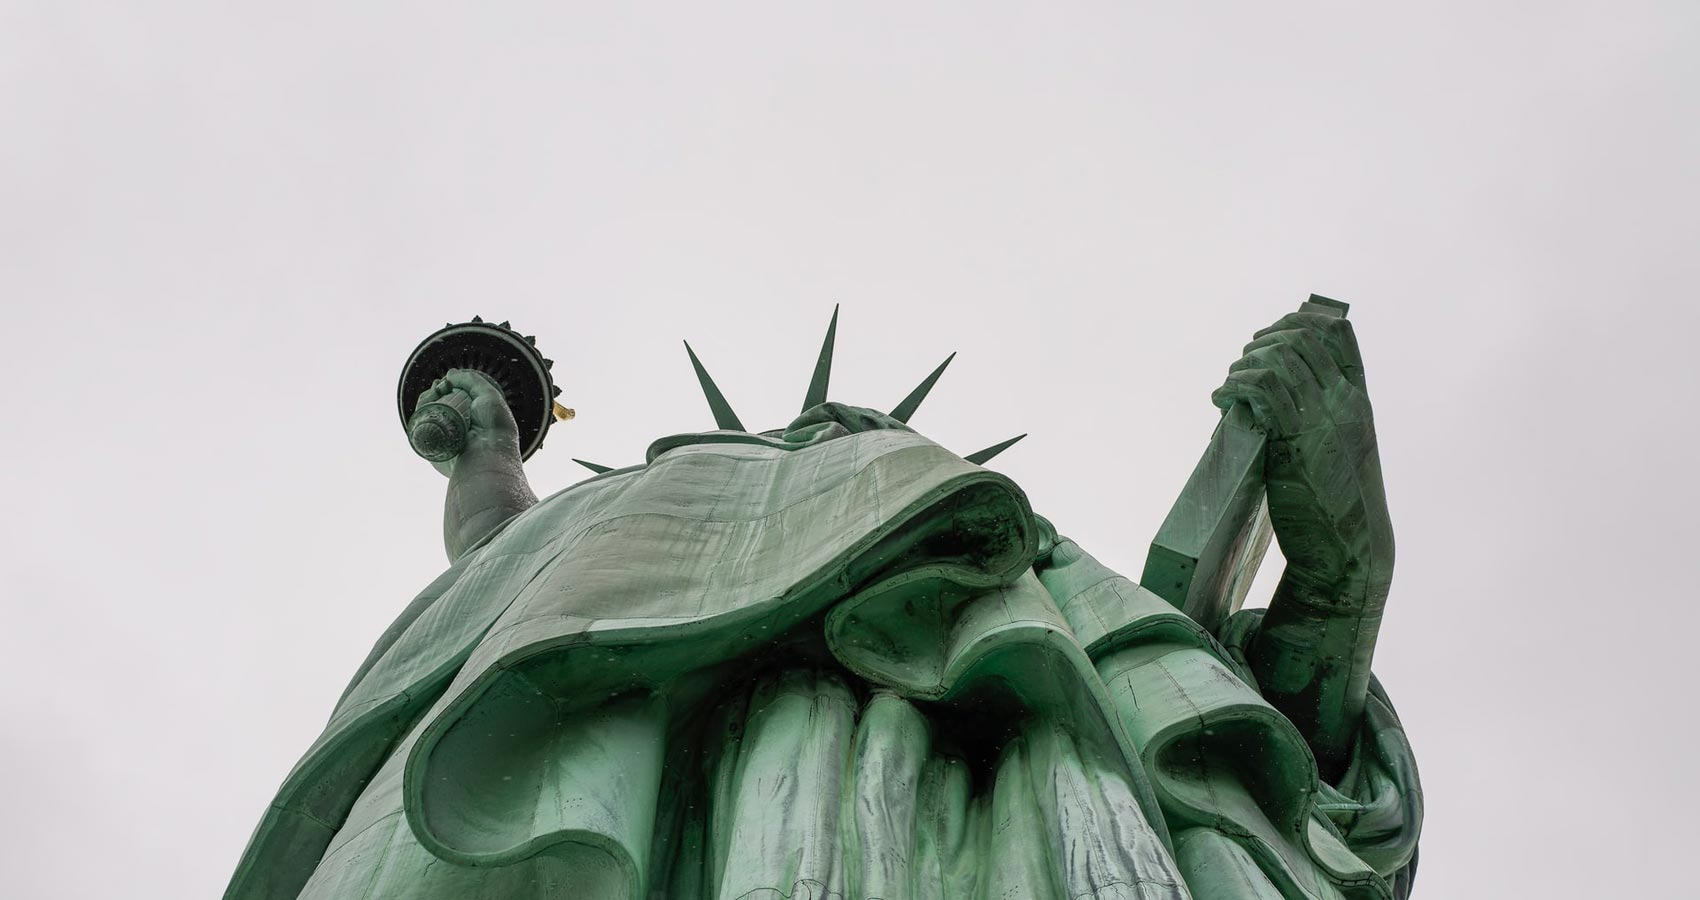 Lady Liberty's Skirt - January 6, 2021, poem by Martha Annice Jackson at Spillwords.com